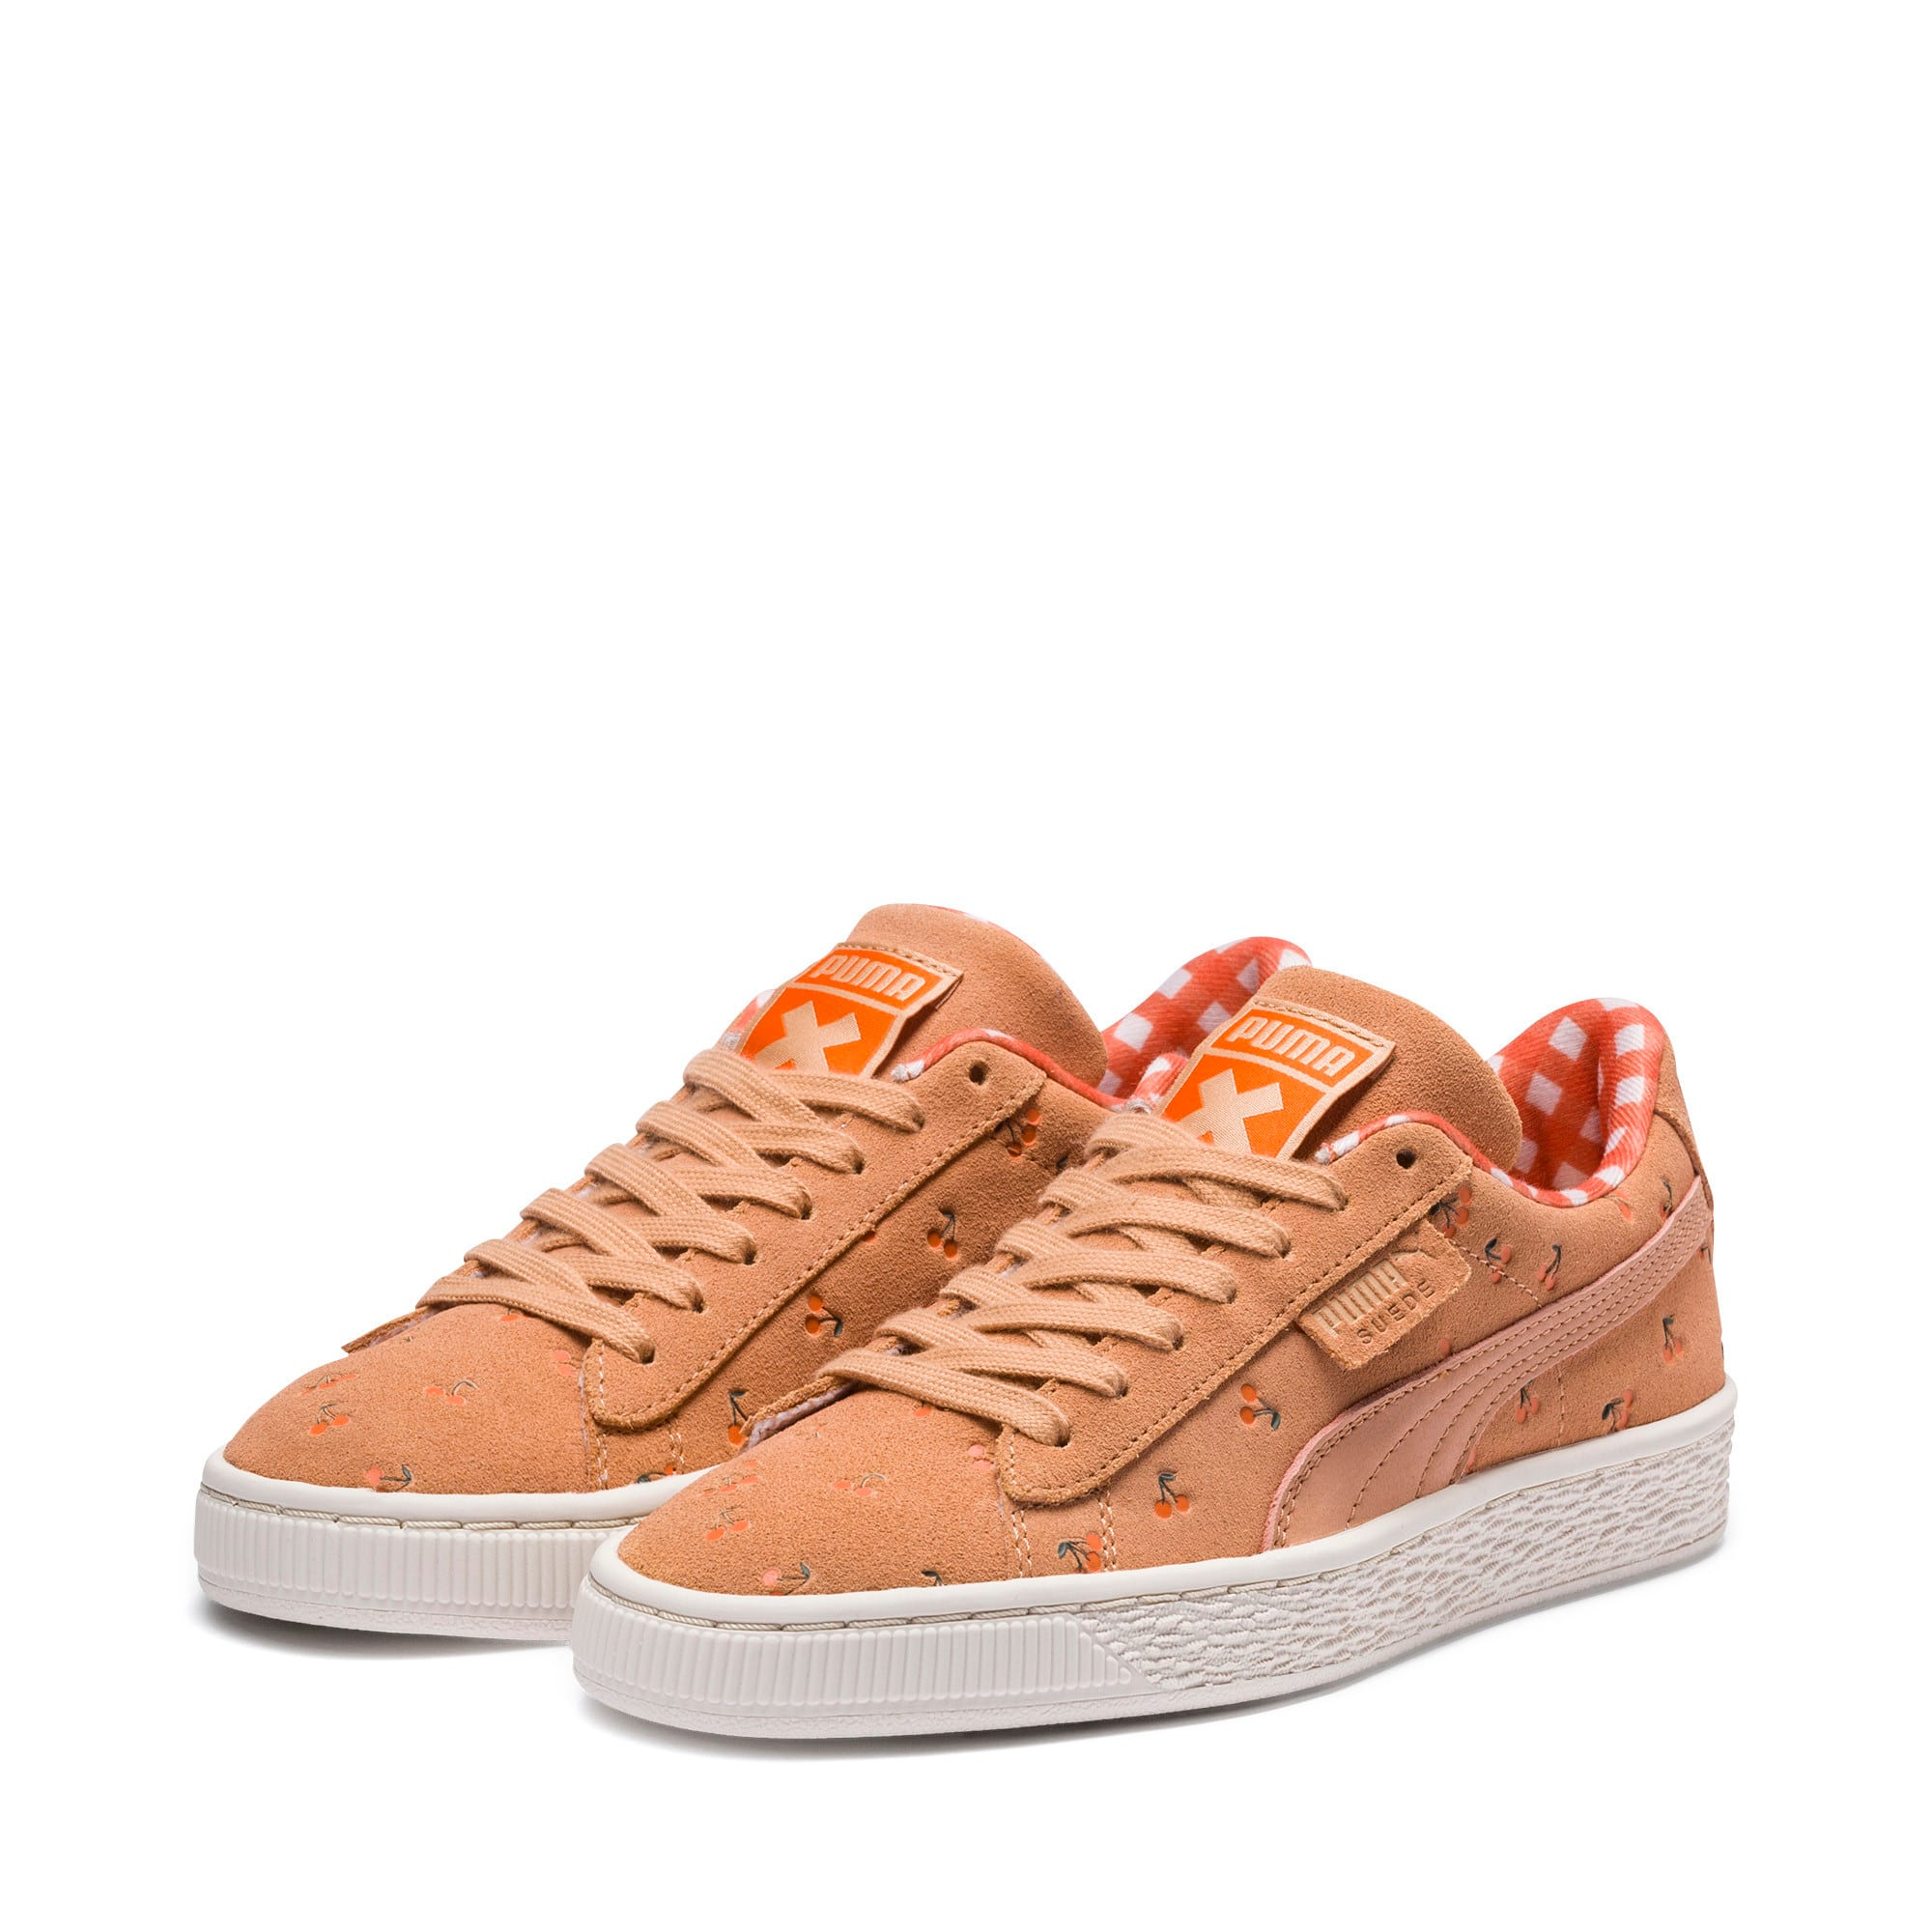 PUMA X TINYCOTTONS Suede JR, Toast-Mandarin Orange-Thyme, large